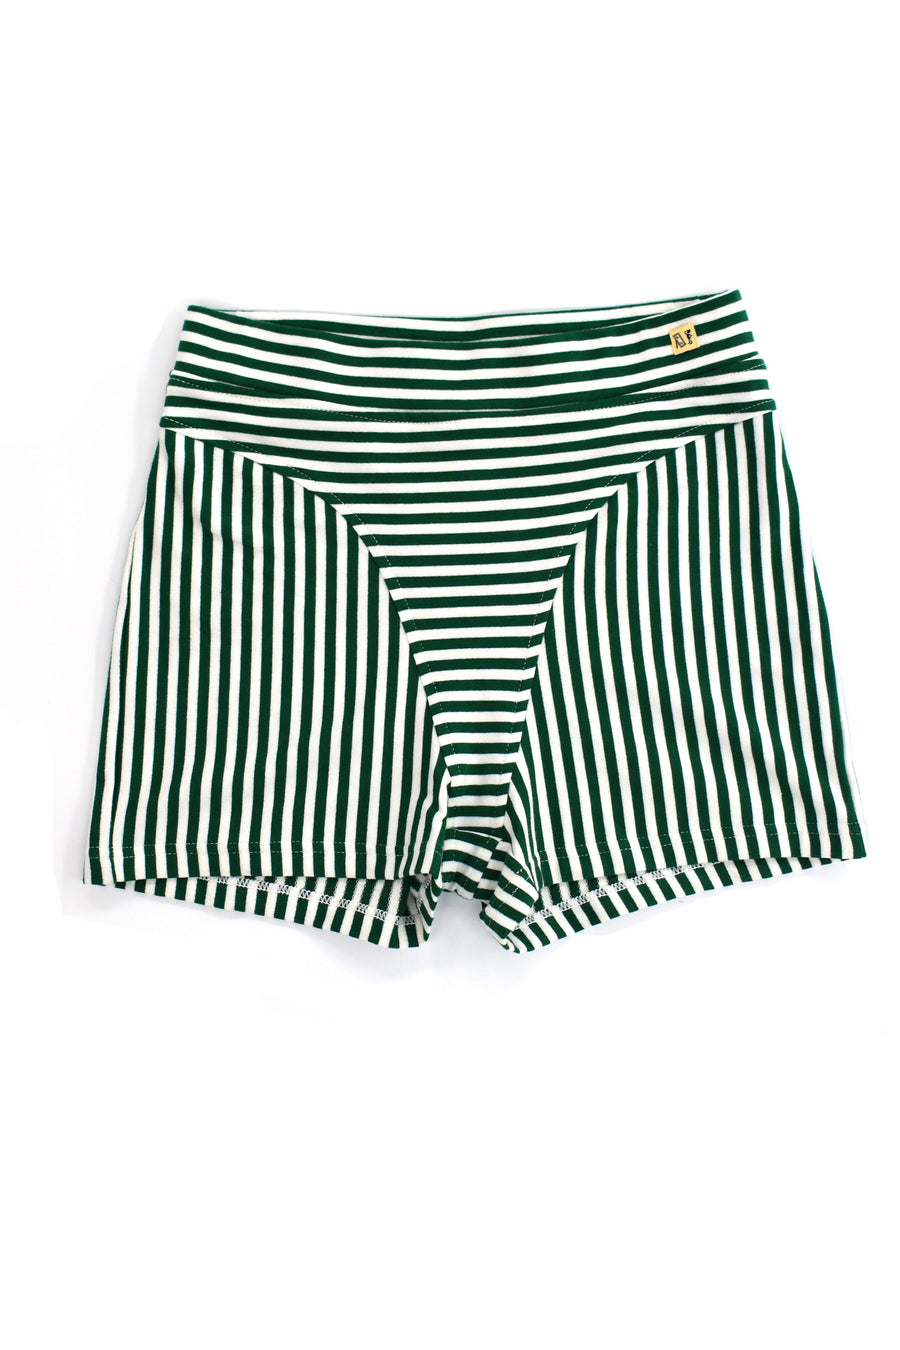 Green/White Striped Thong Short Shorts